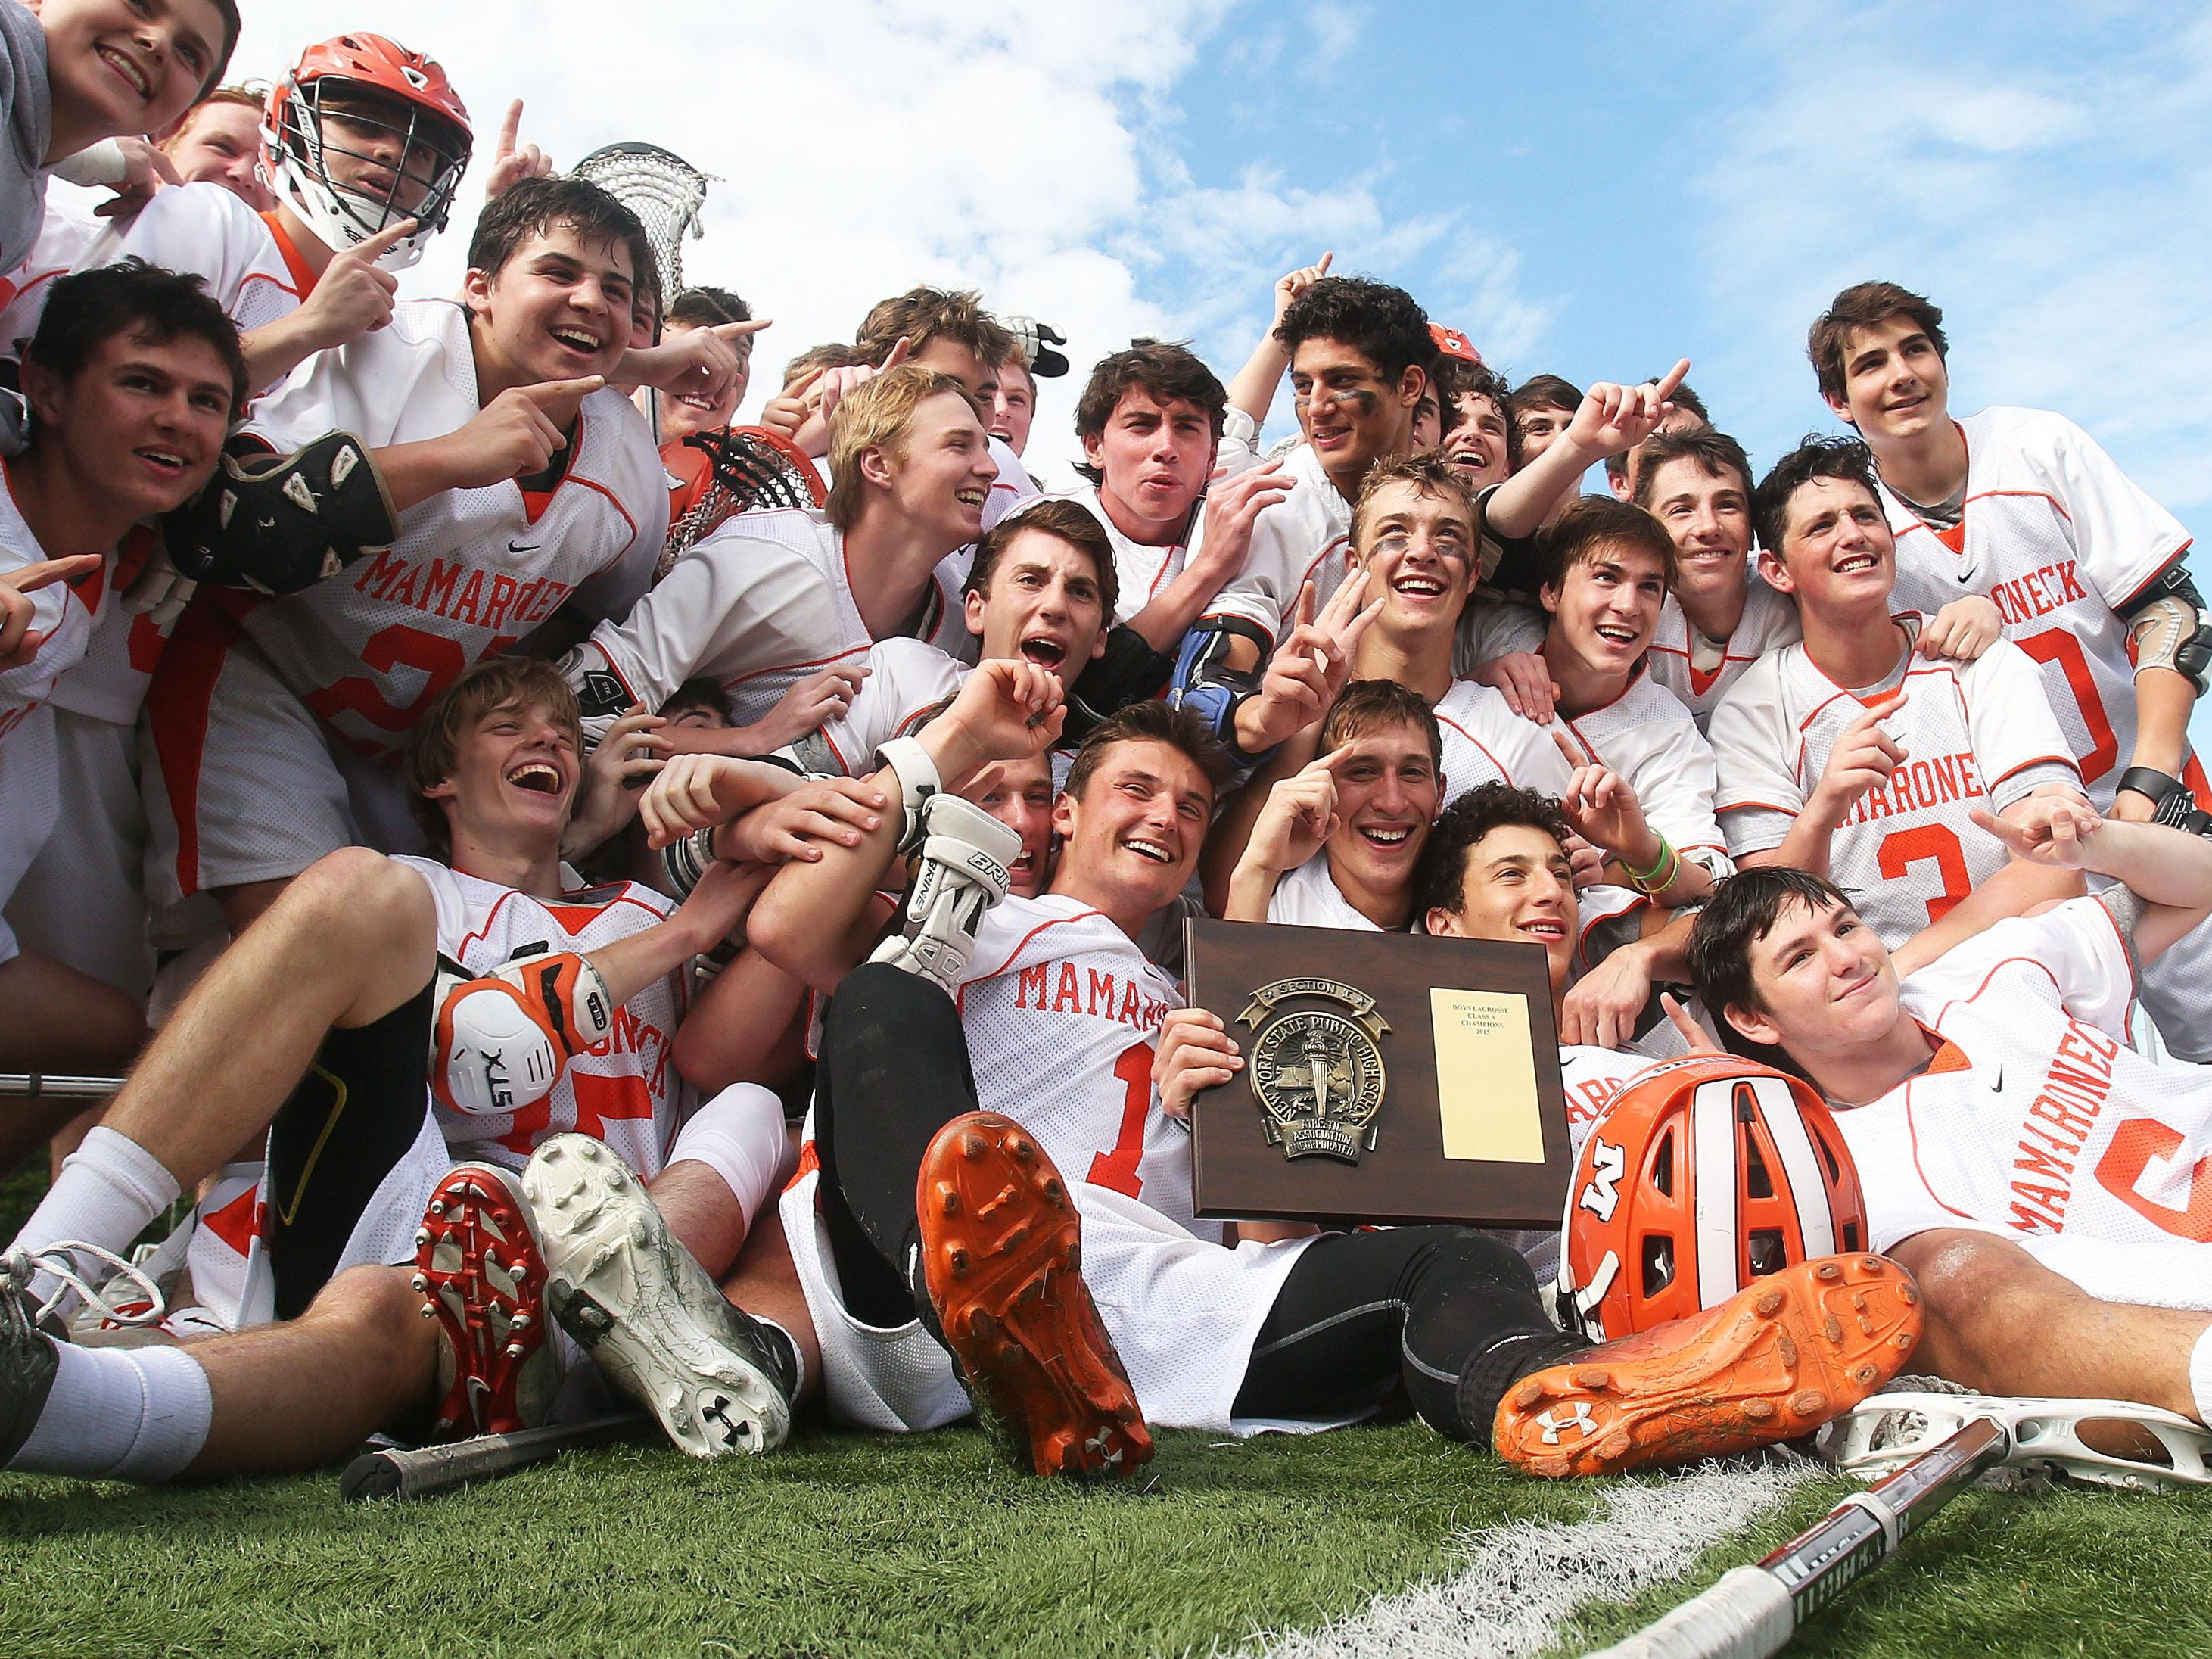 Mamaroneck has won three of the last four Section 1 Class A championships and has become a perennial contender.